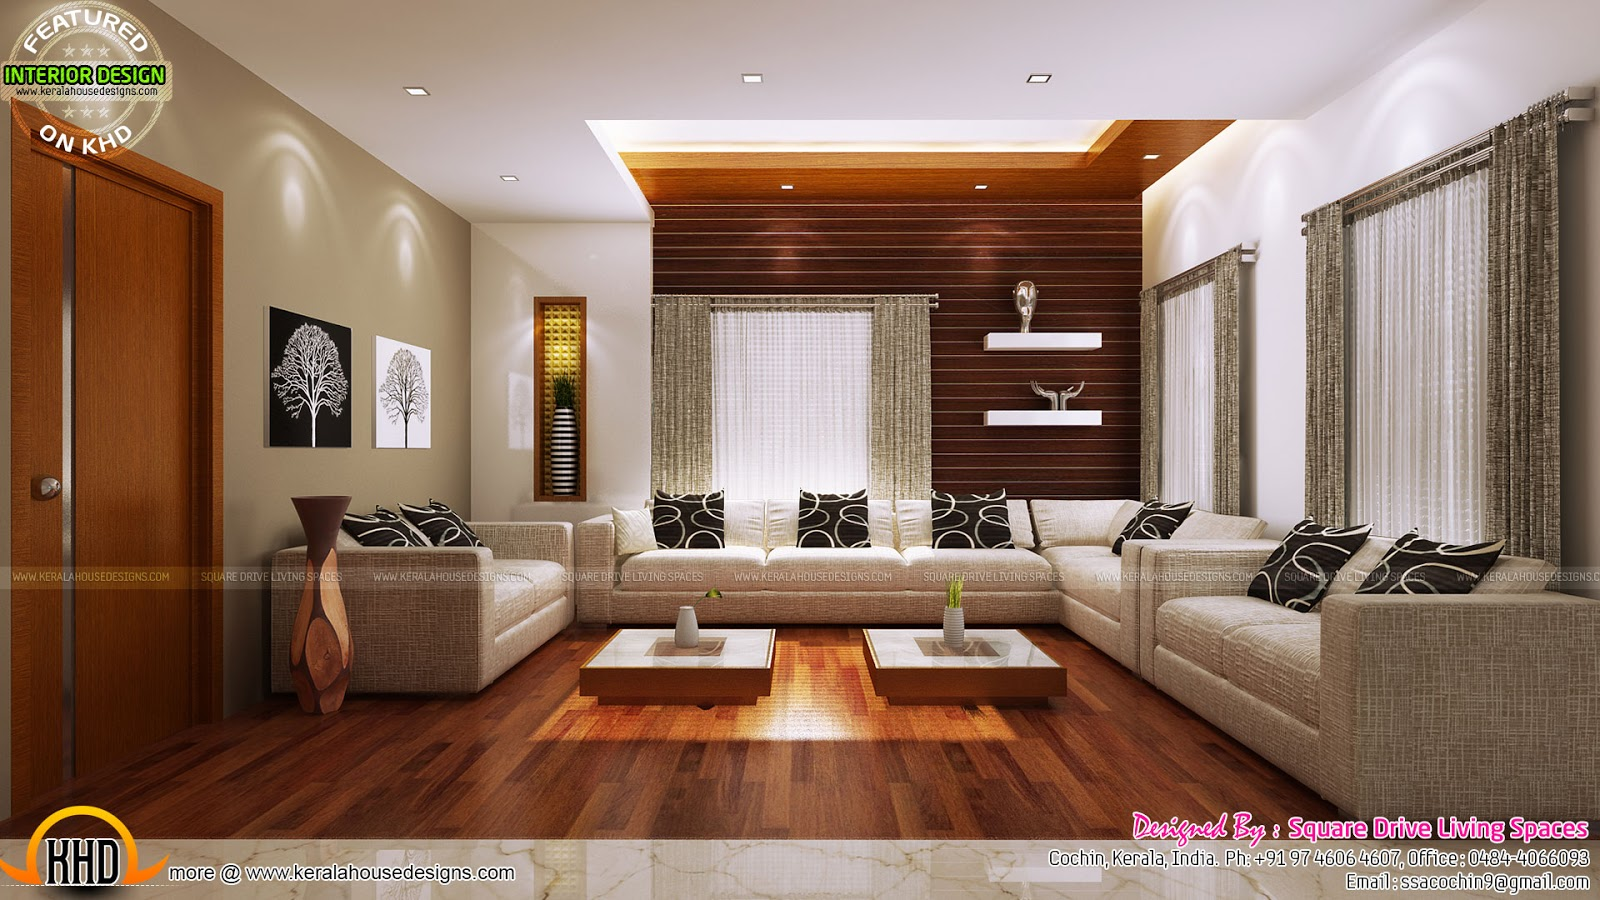 interior design for small homes excellent kerala interior design kerala home design and 24438